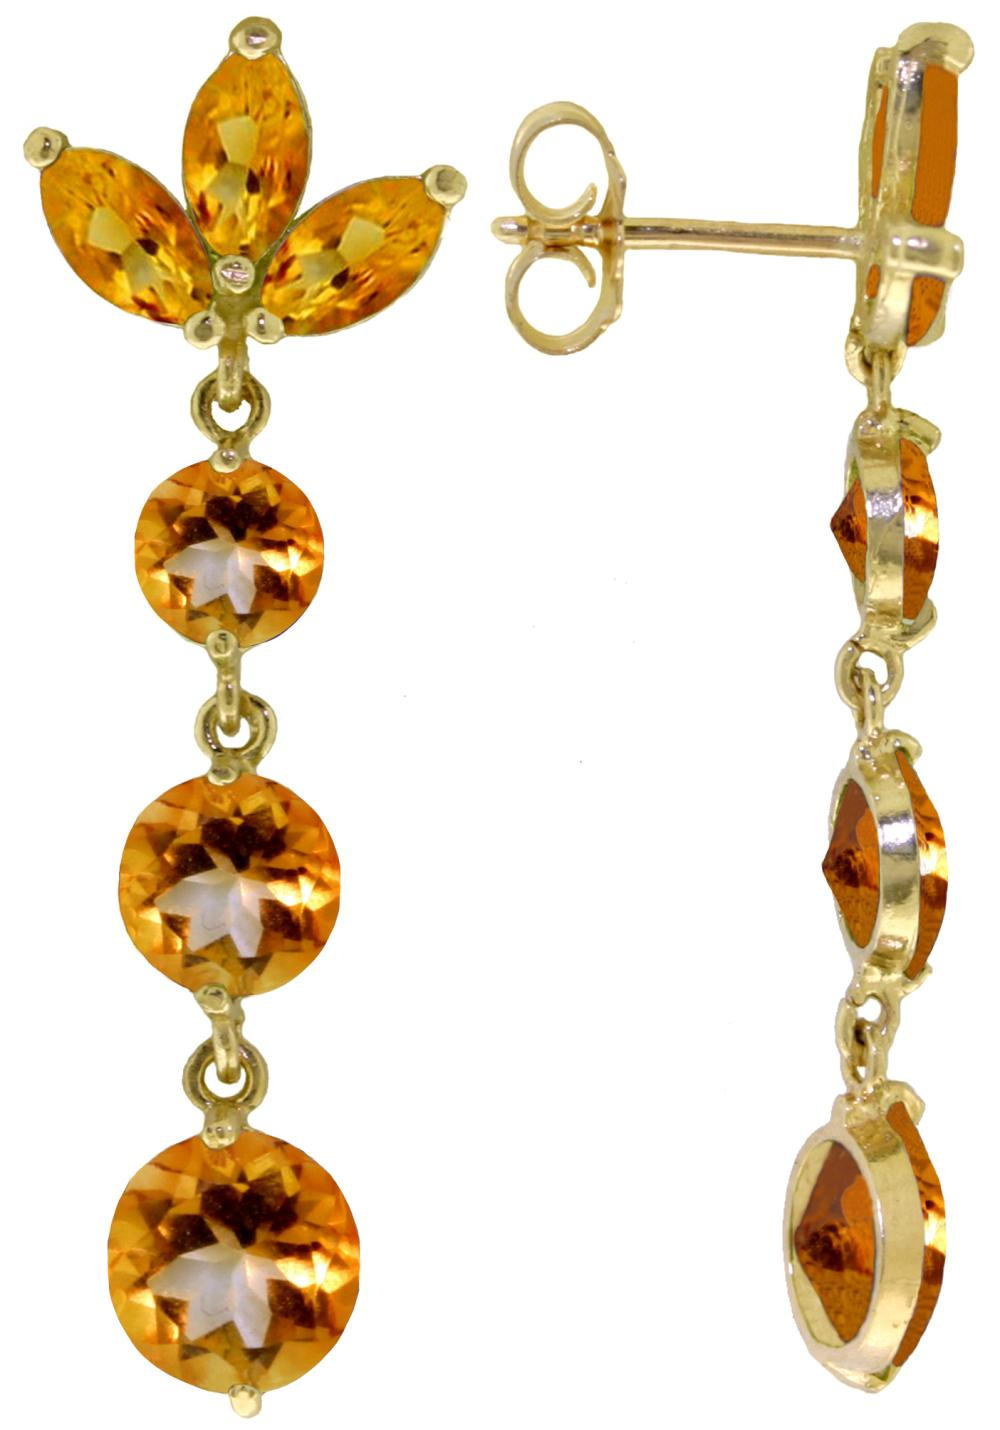 Genuine 8.7 ctw Citrine Earrings Jewelry 14KT White Gold - REF-53H6X